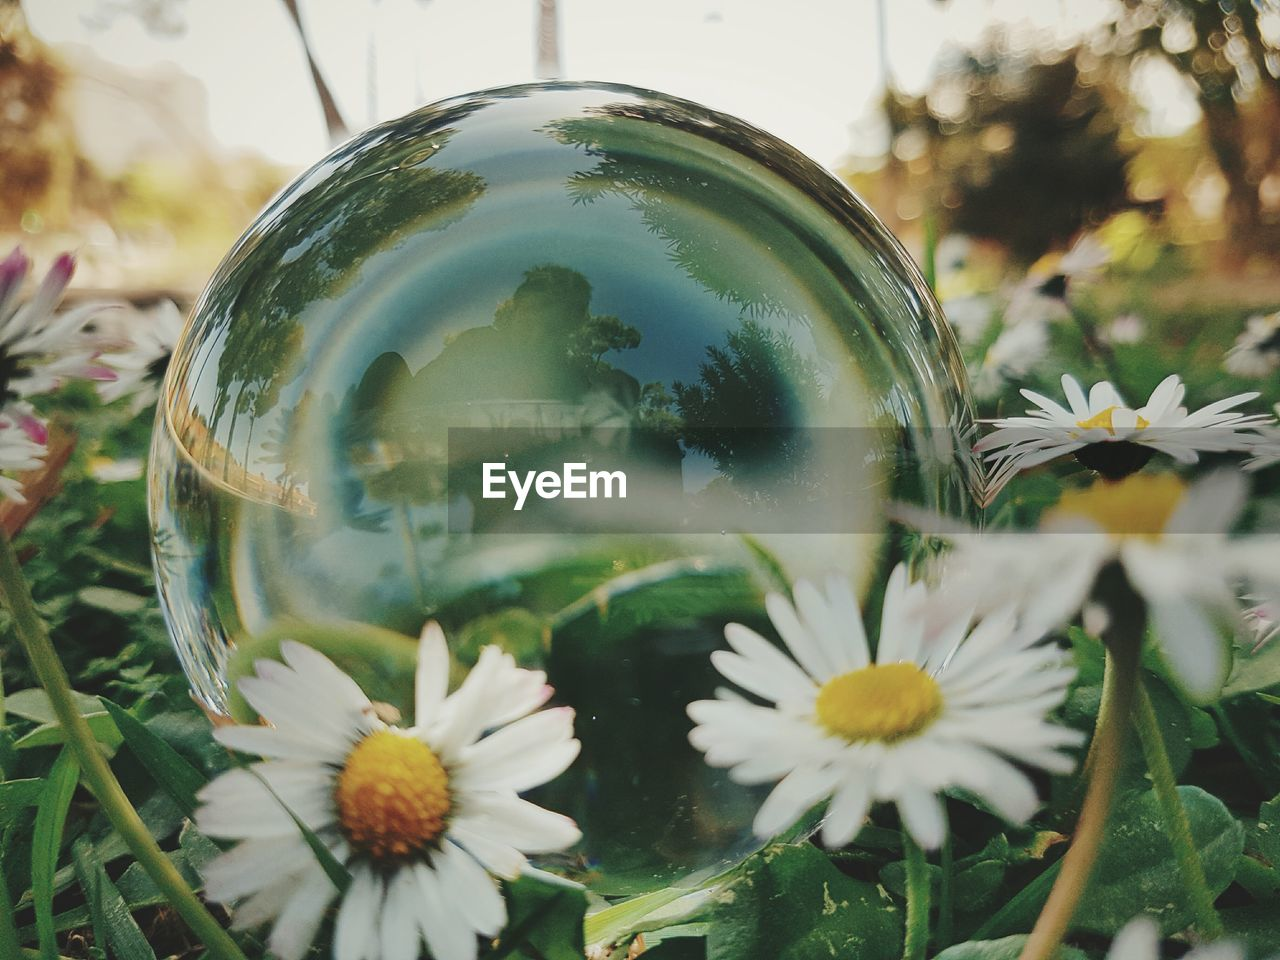 Reflection of person in crystal ball on field by flowers